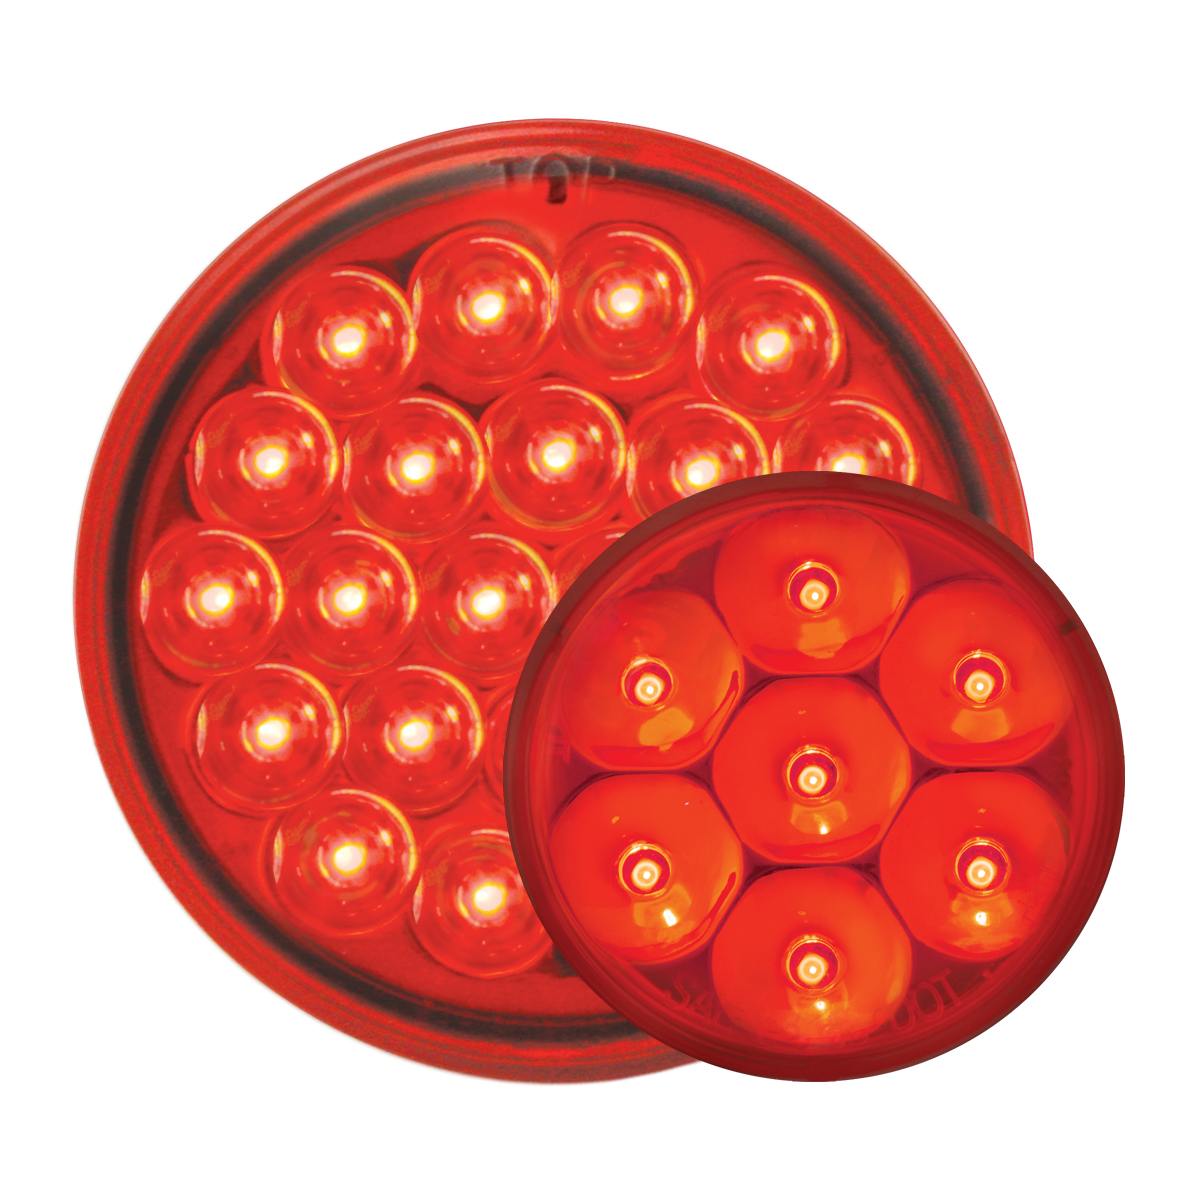 #78273/#76582 Pearl LED Flat - Red/Red